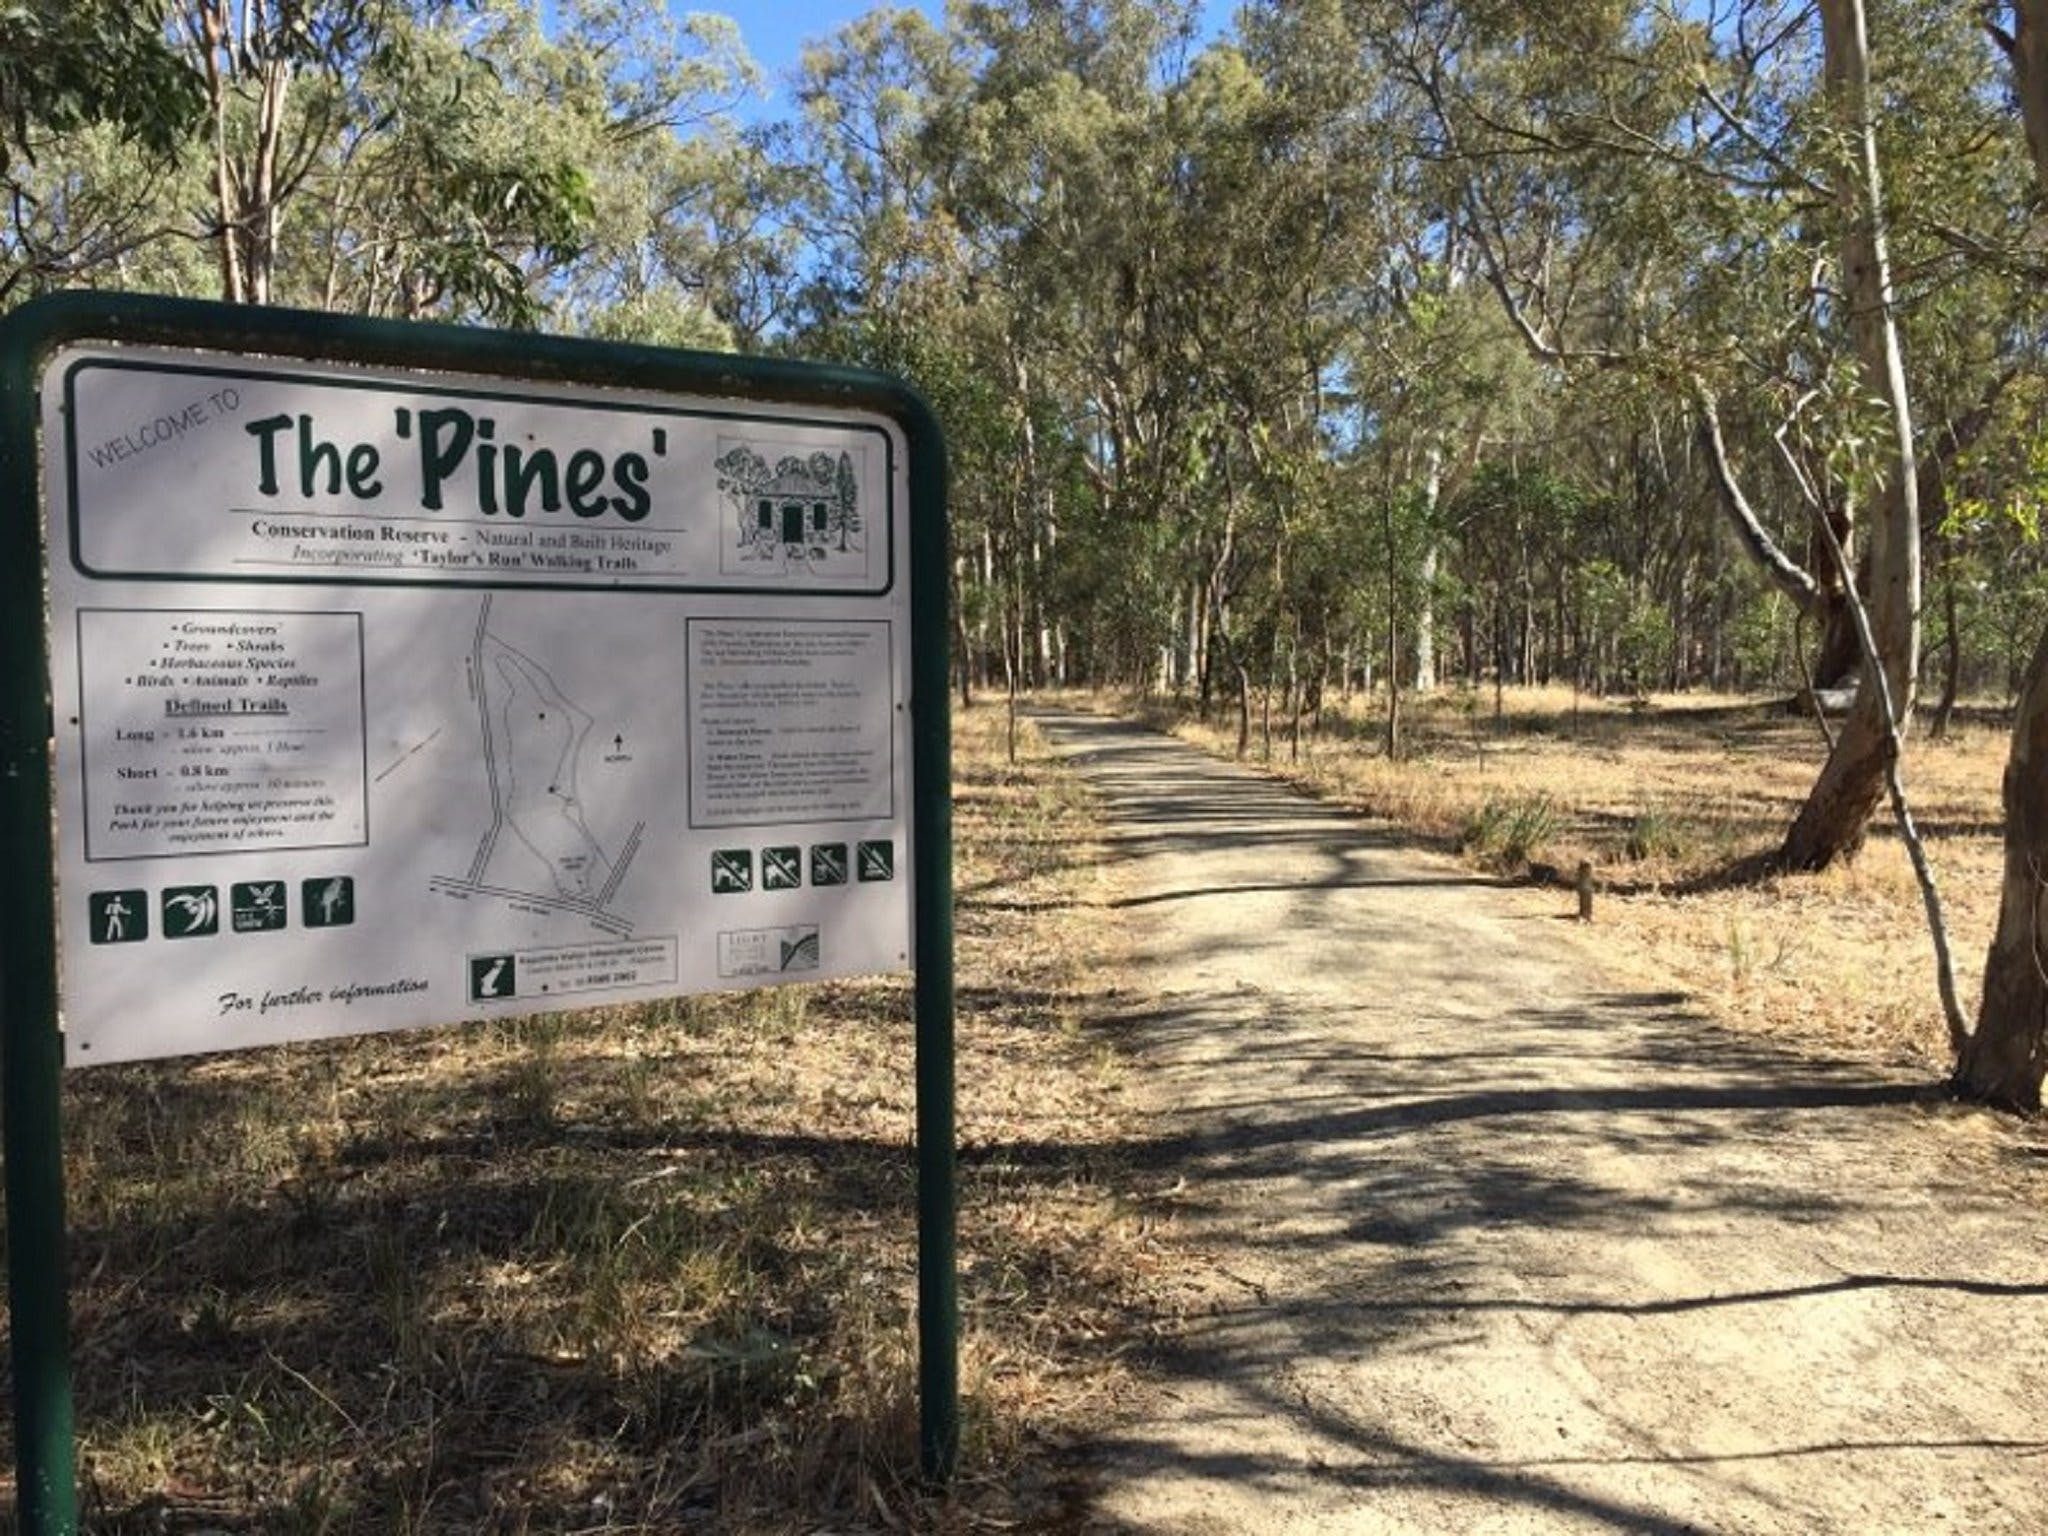 The Pines Conservation Reserve - SA Accommodation